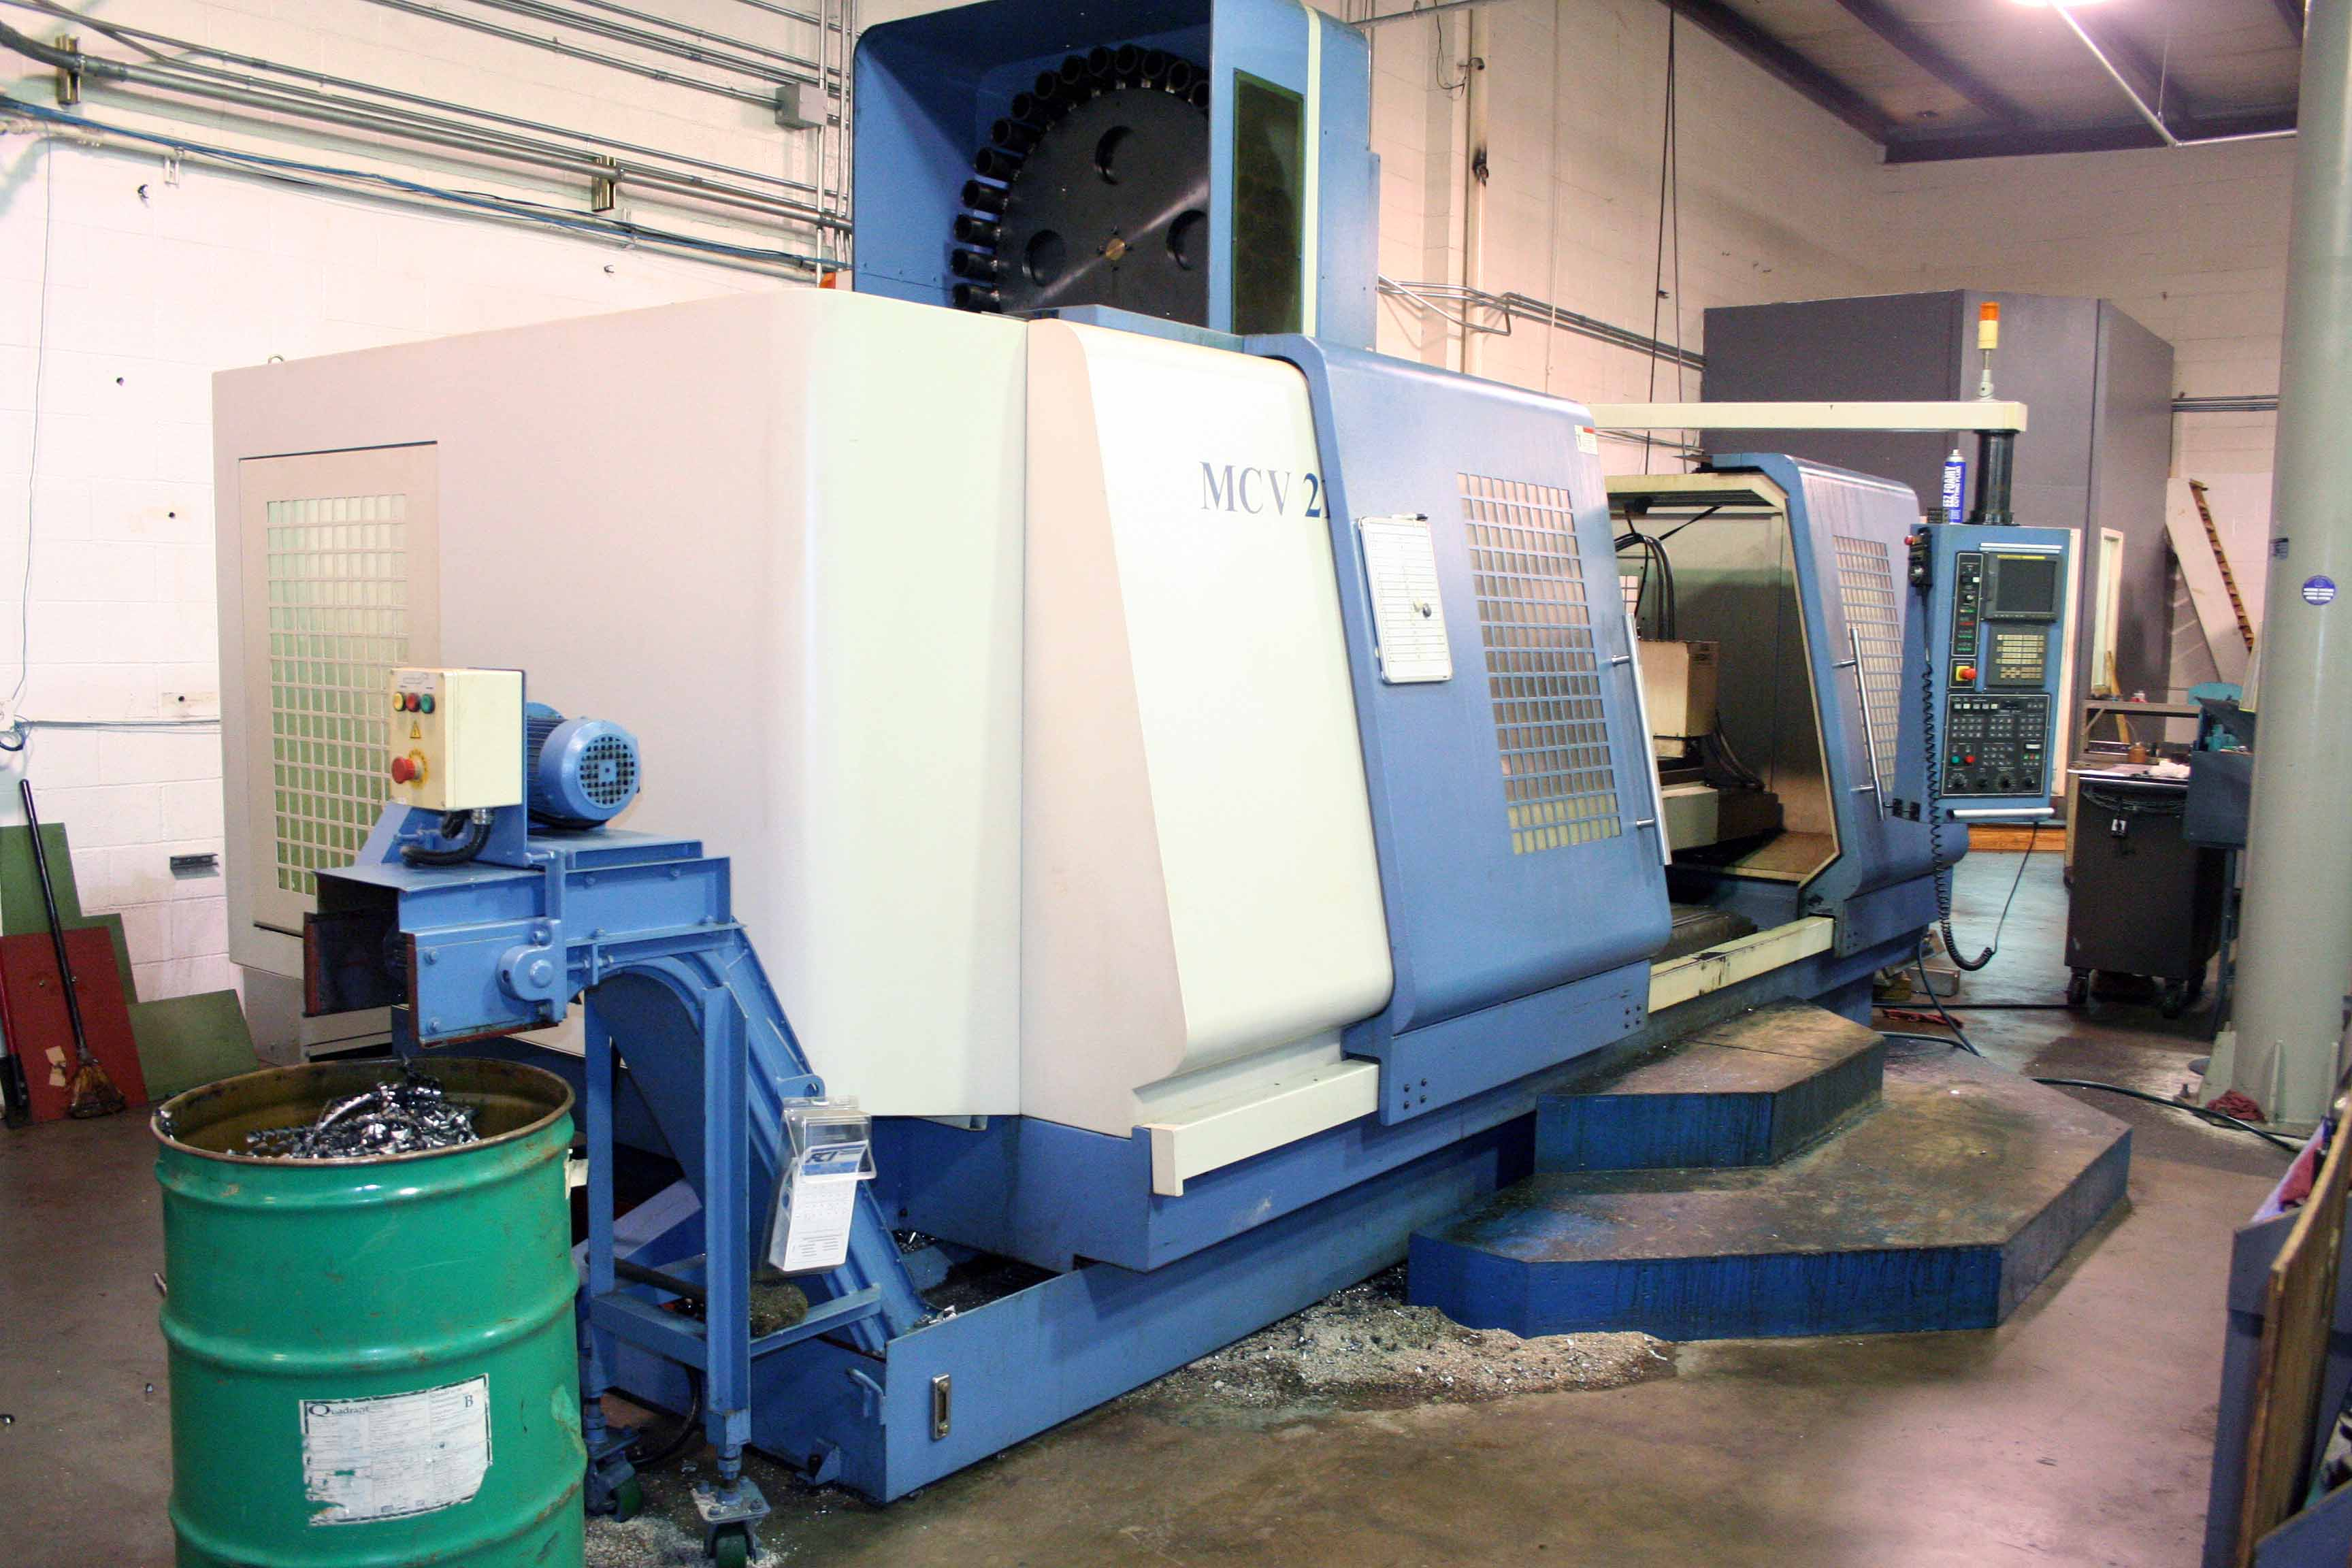 Lot 1 - CNC VERTICAL MACHINING CENTER, DAHLIH MDL. DL-MCV2100, new 2008, Fanuc Series 21i-MB CNC control,